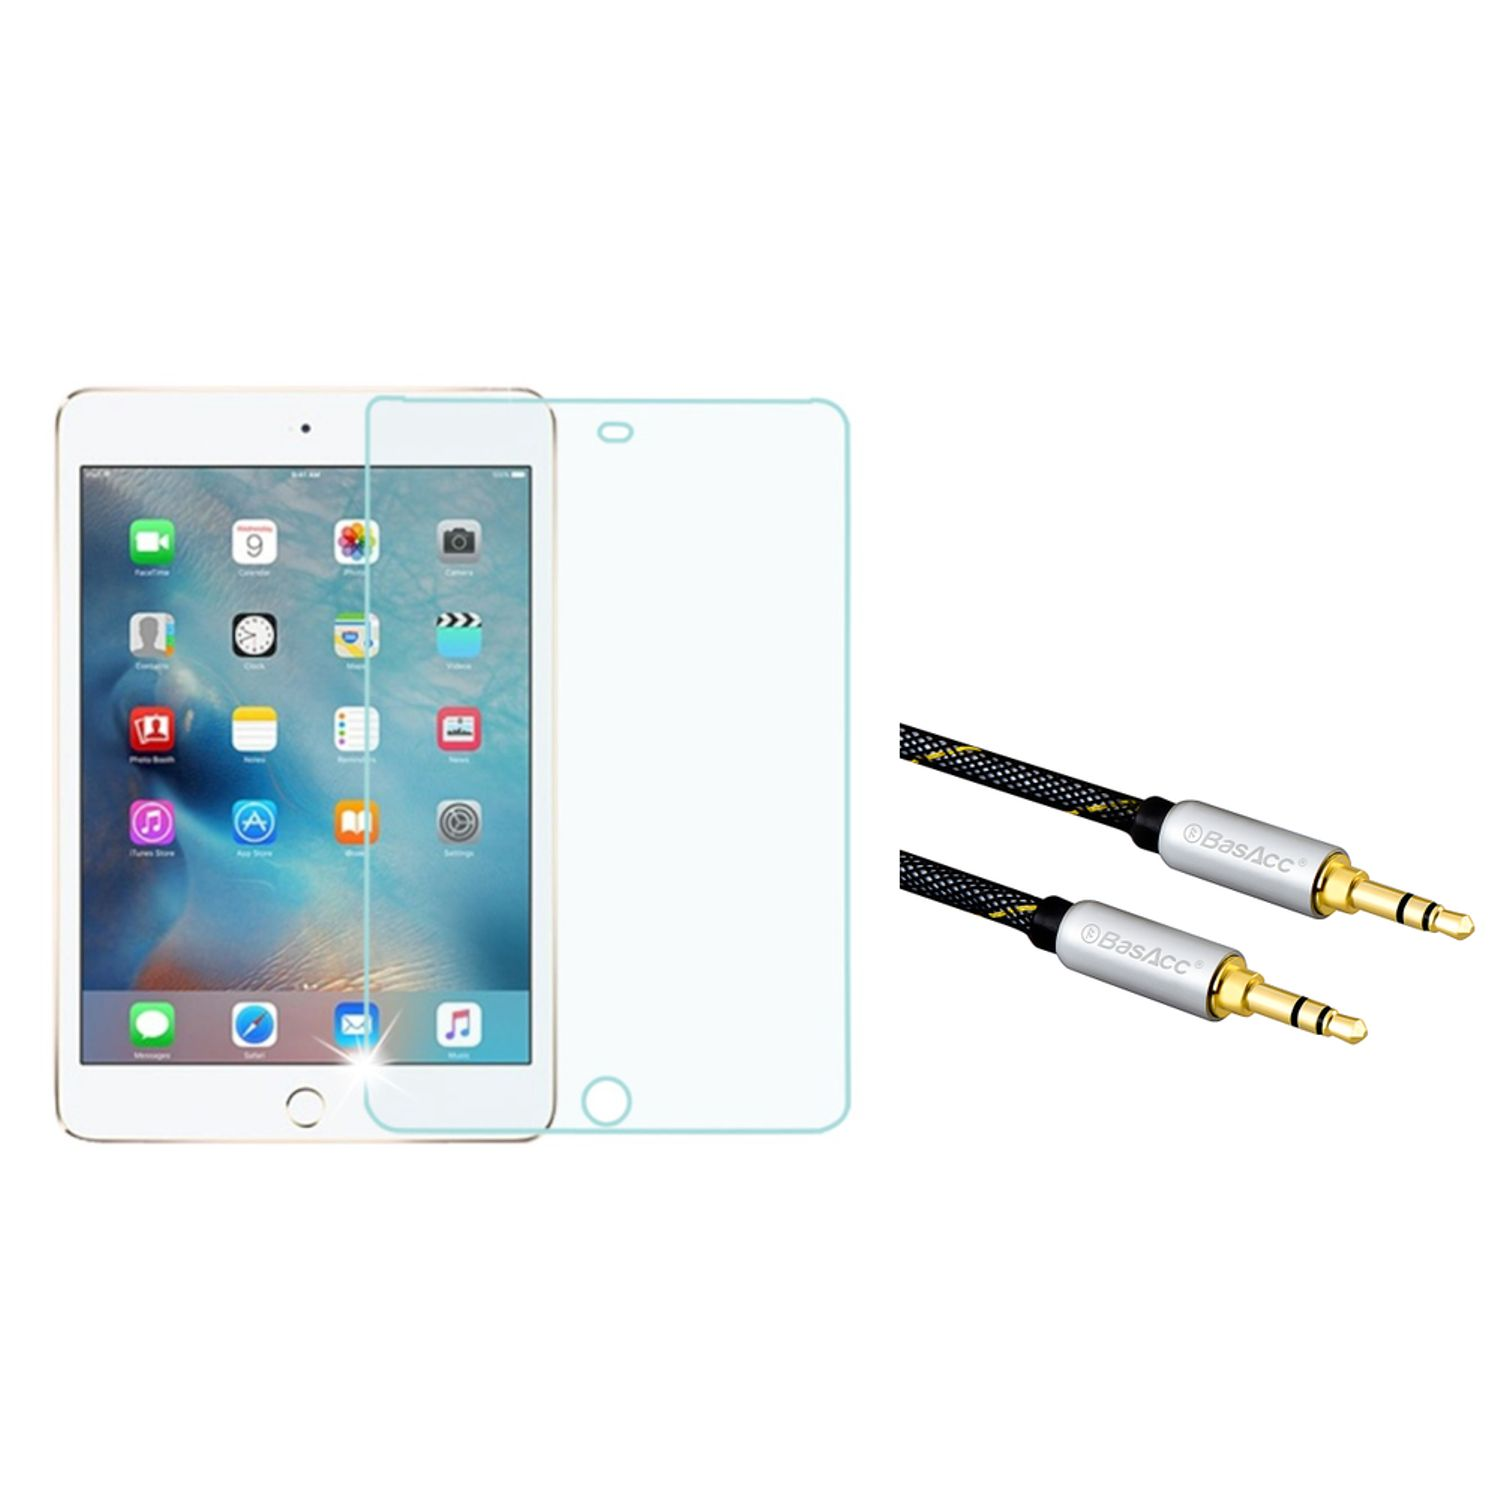 Tempered Glass For iPad Mini 4, by Insten Tempered Glass Screen Protector For iPad Mini 4 4th Gen (2015) (with 3.5mm Audio Extension Cable M/M)